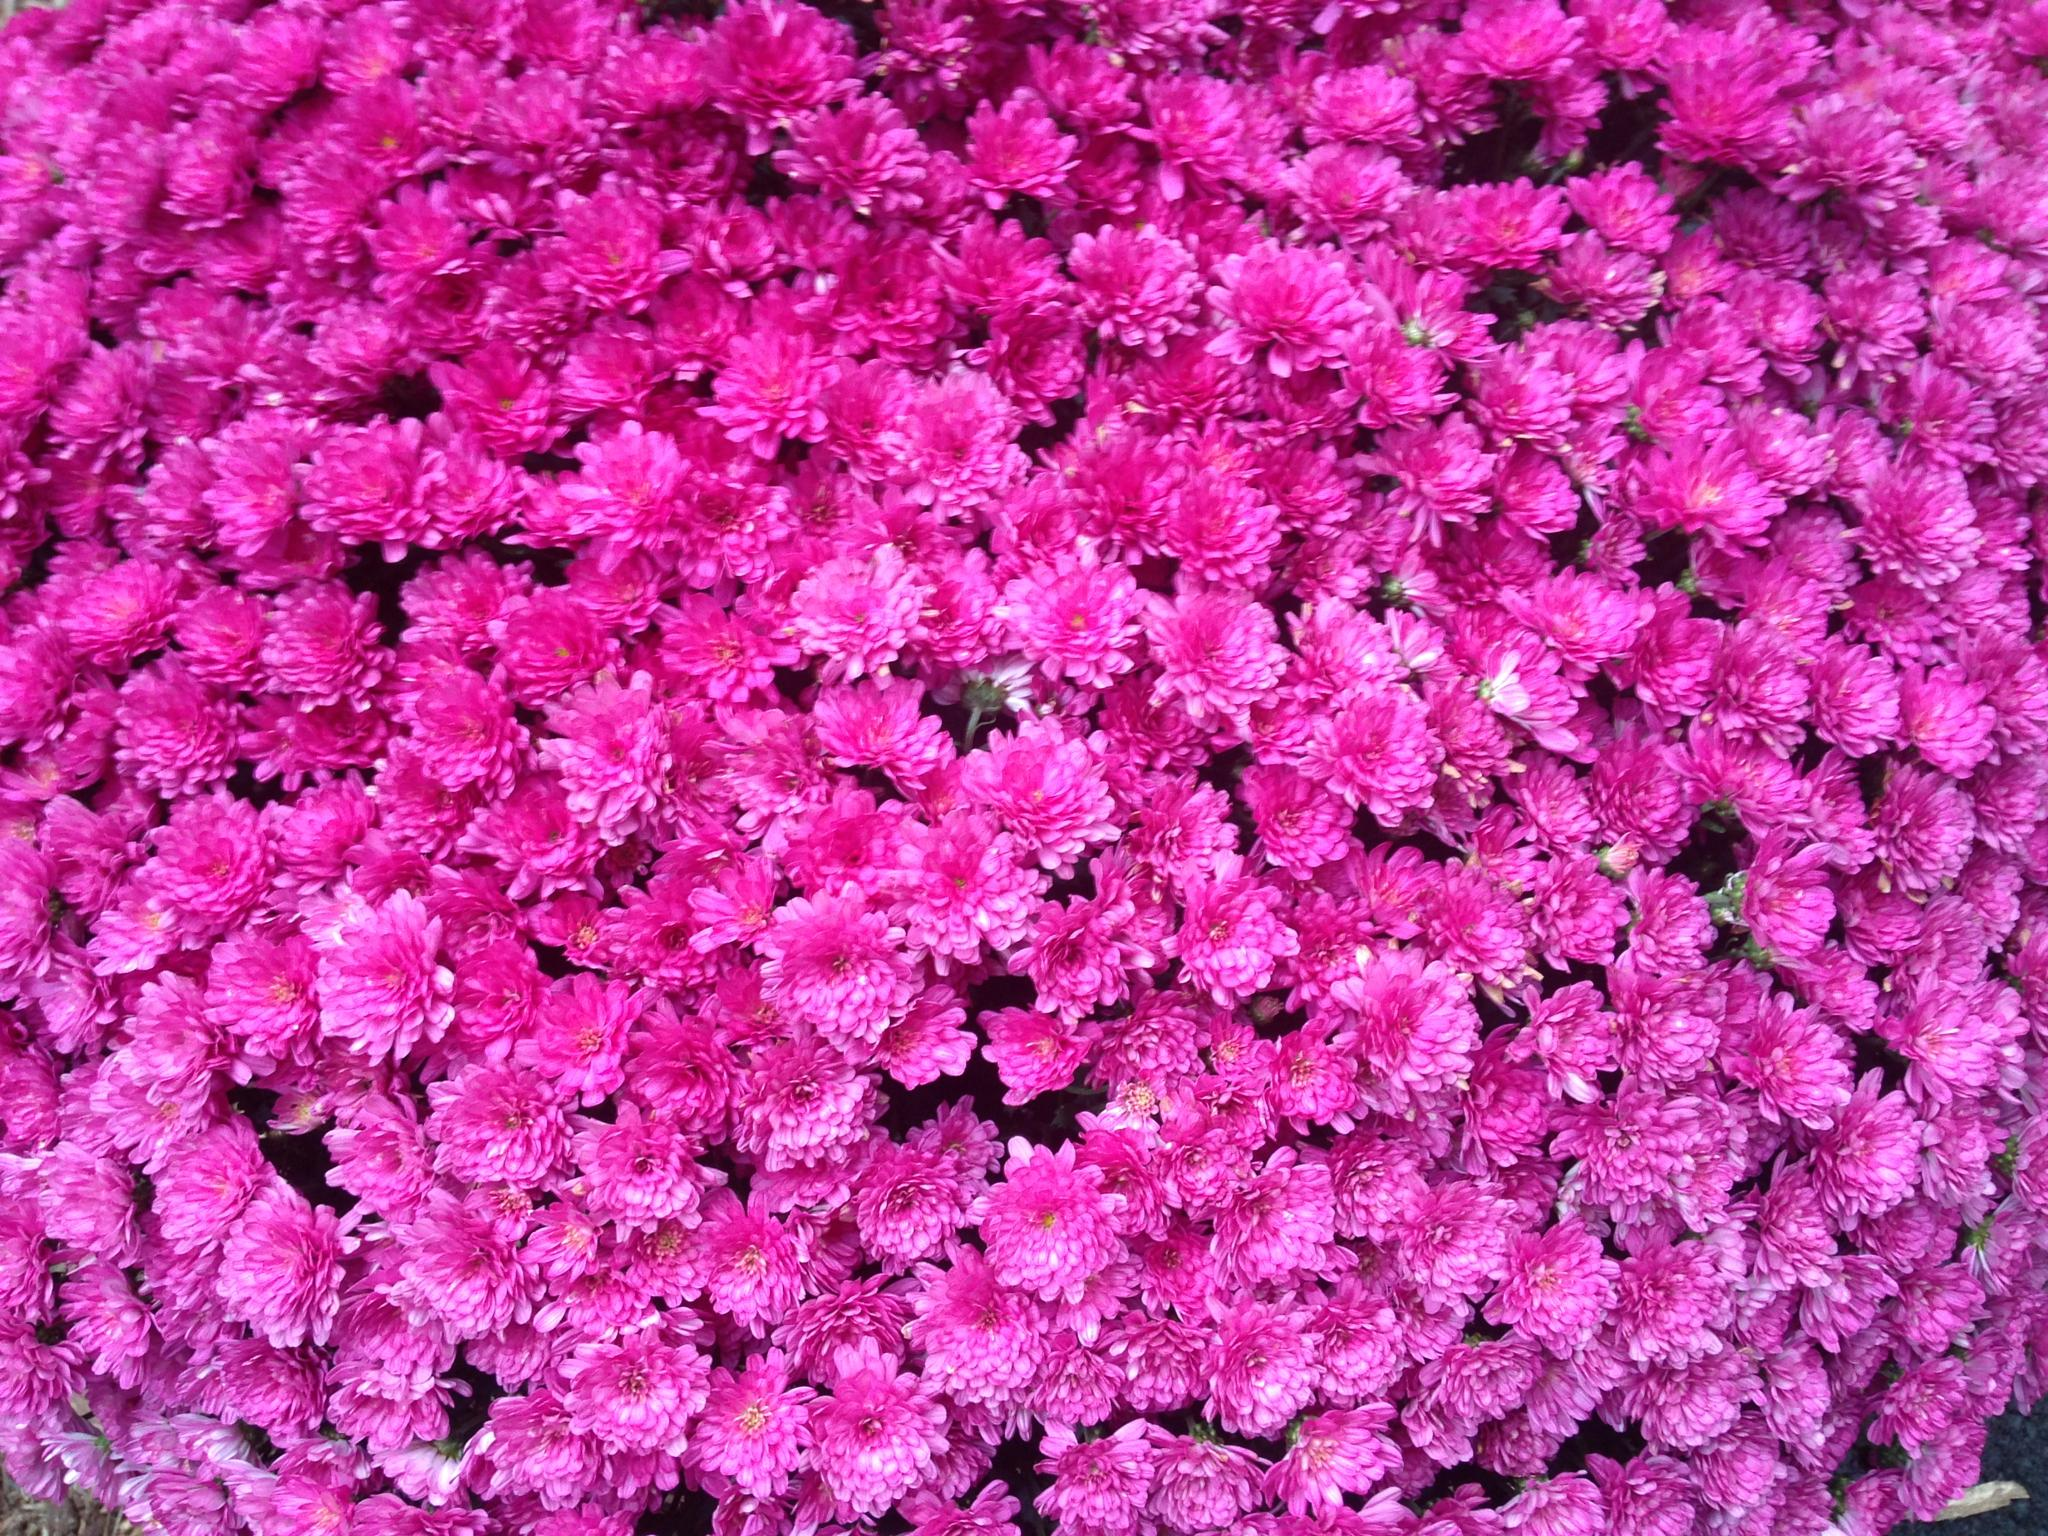 Carpet of Mums by scausby1